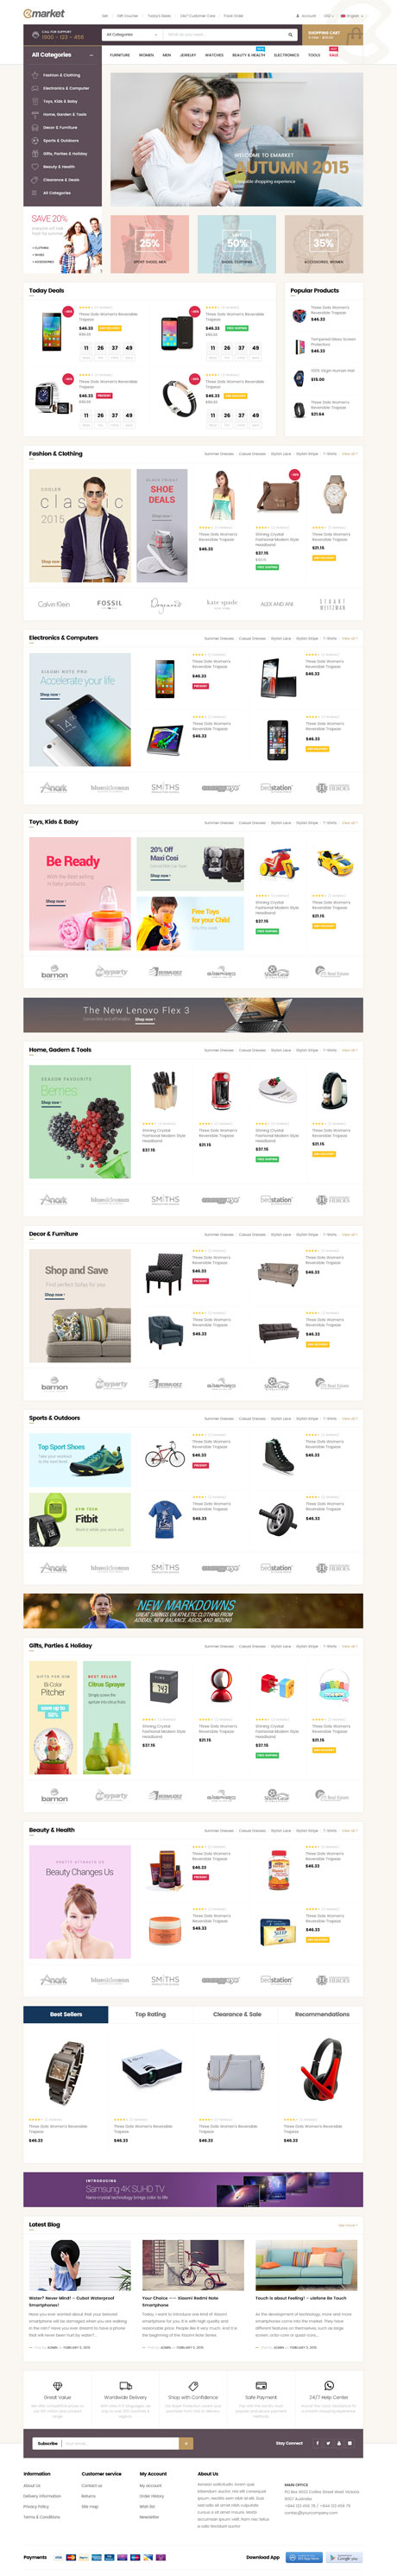 best Shopify Themes for Selling Digital Products - ST Emarket Shopify Theme